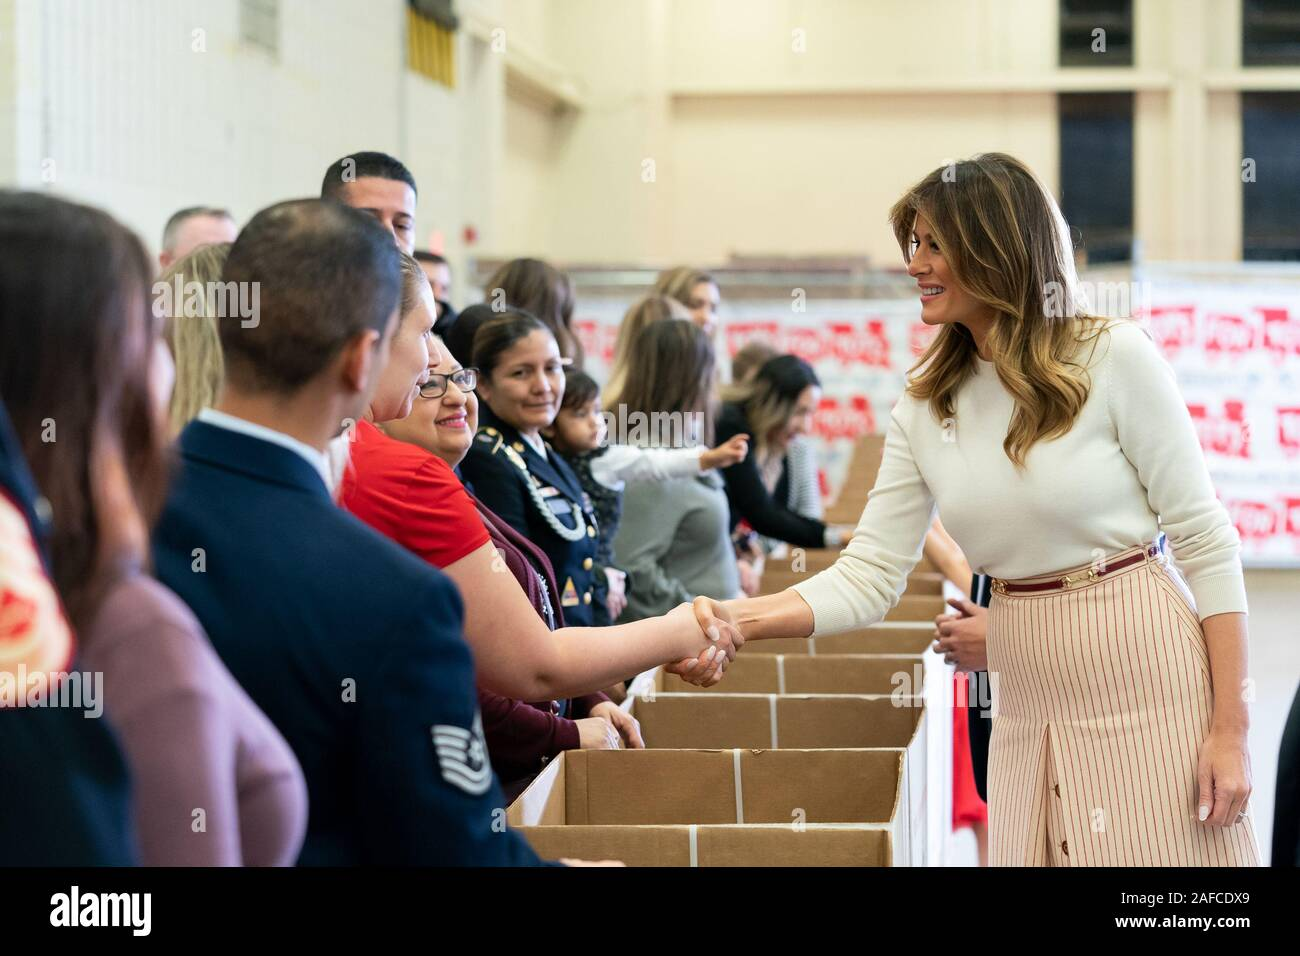 Washington, United States Of America. 09th Dec, 2019. First Lady Melania Trump greets service members and their families attending a Toys for Tots Christmas Event Monday, Dec. 9, 2019, at Joint Base Anacostia-Bolling in Washington, DC People: First Lady Melania Trump Credit: Storms Media Group/Alamy Live News Stock Photo